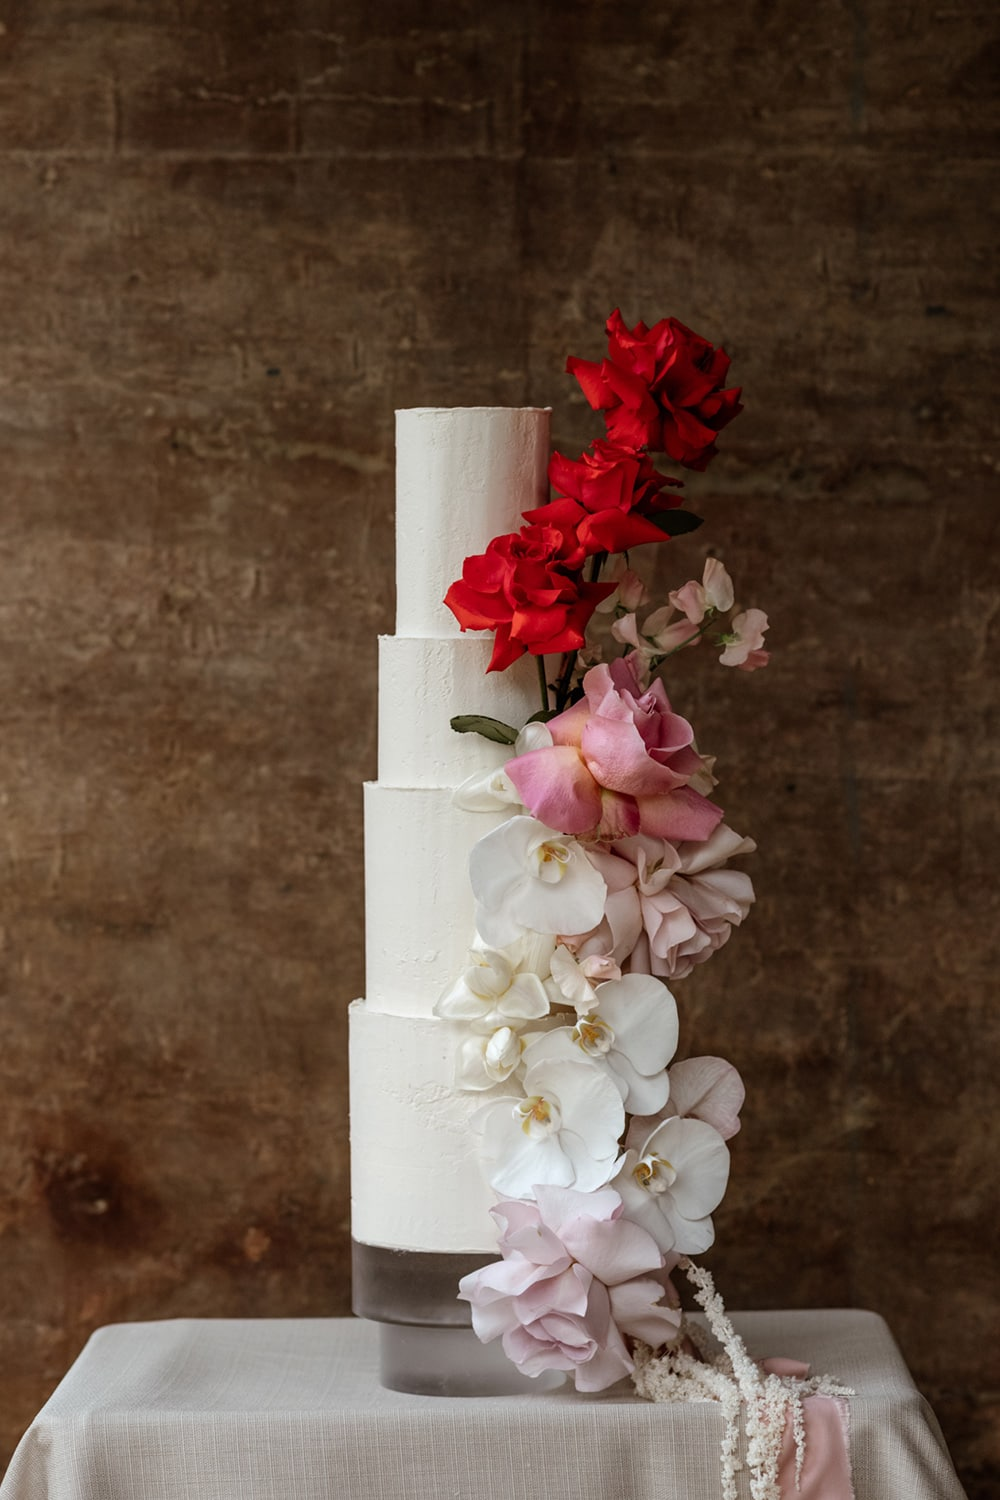 Modern Red & Pink Wedding Ideas | An elegant four tier wedding cake in white buttercream topped with cascading ombre florals in red, pink and white, including roses, orchids, sweet pea and amaranthus. | Photography: Laura Martha Photography via Bridal Musings